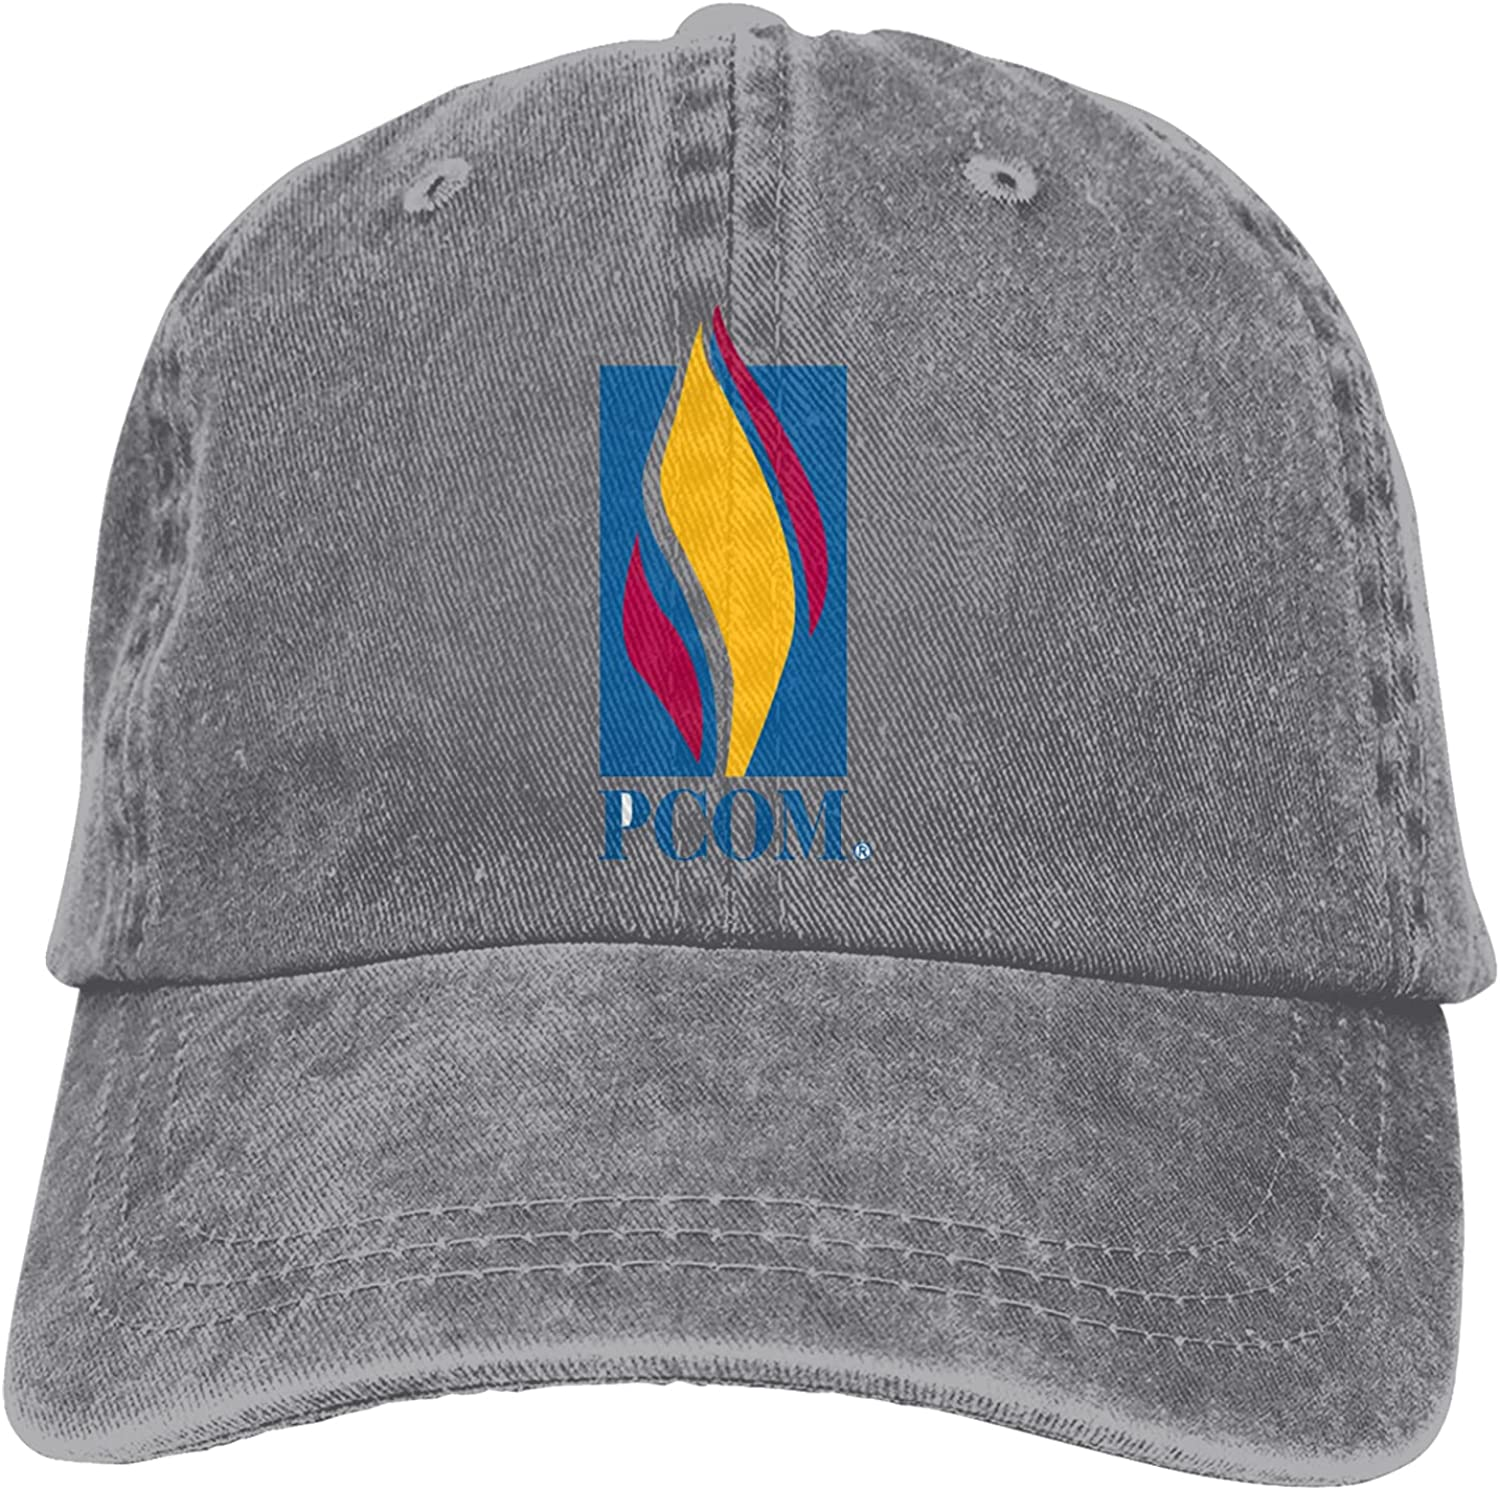 Cheap Super popular specialty store mail order shopping Yund Philadelphia College of Osteopathic Suitable f Medicine Cap